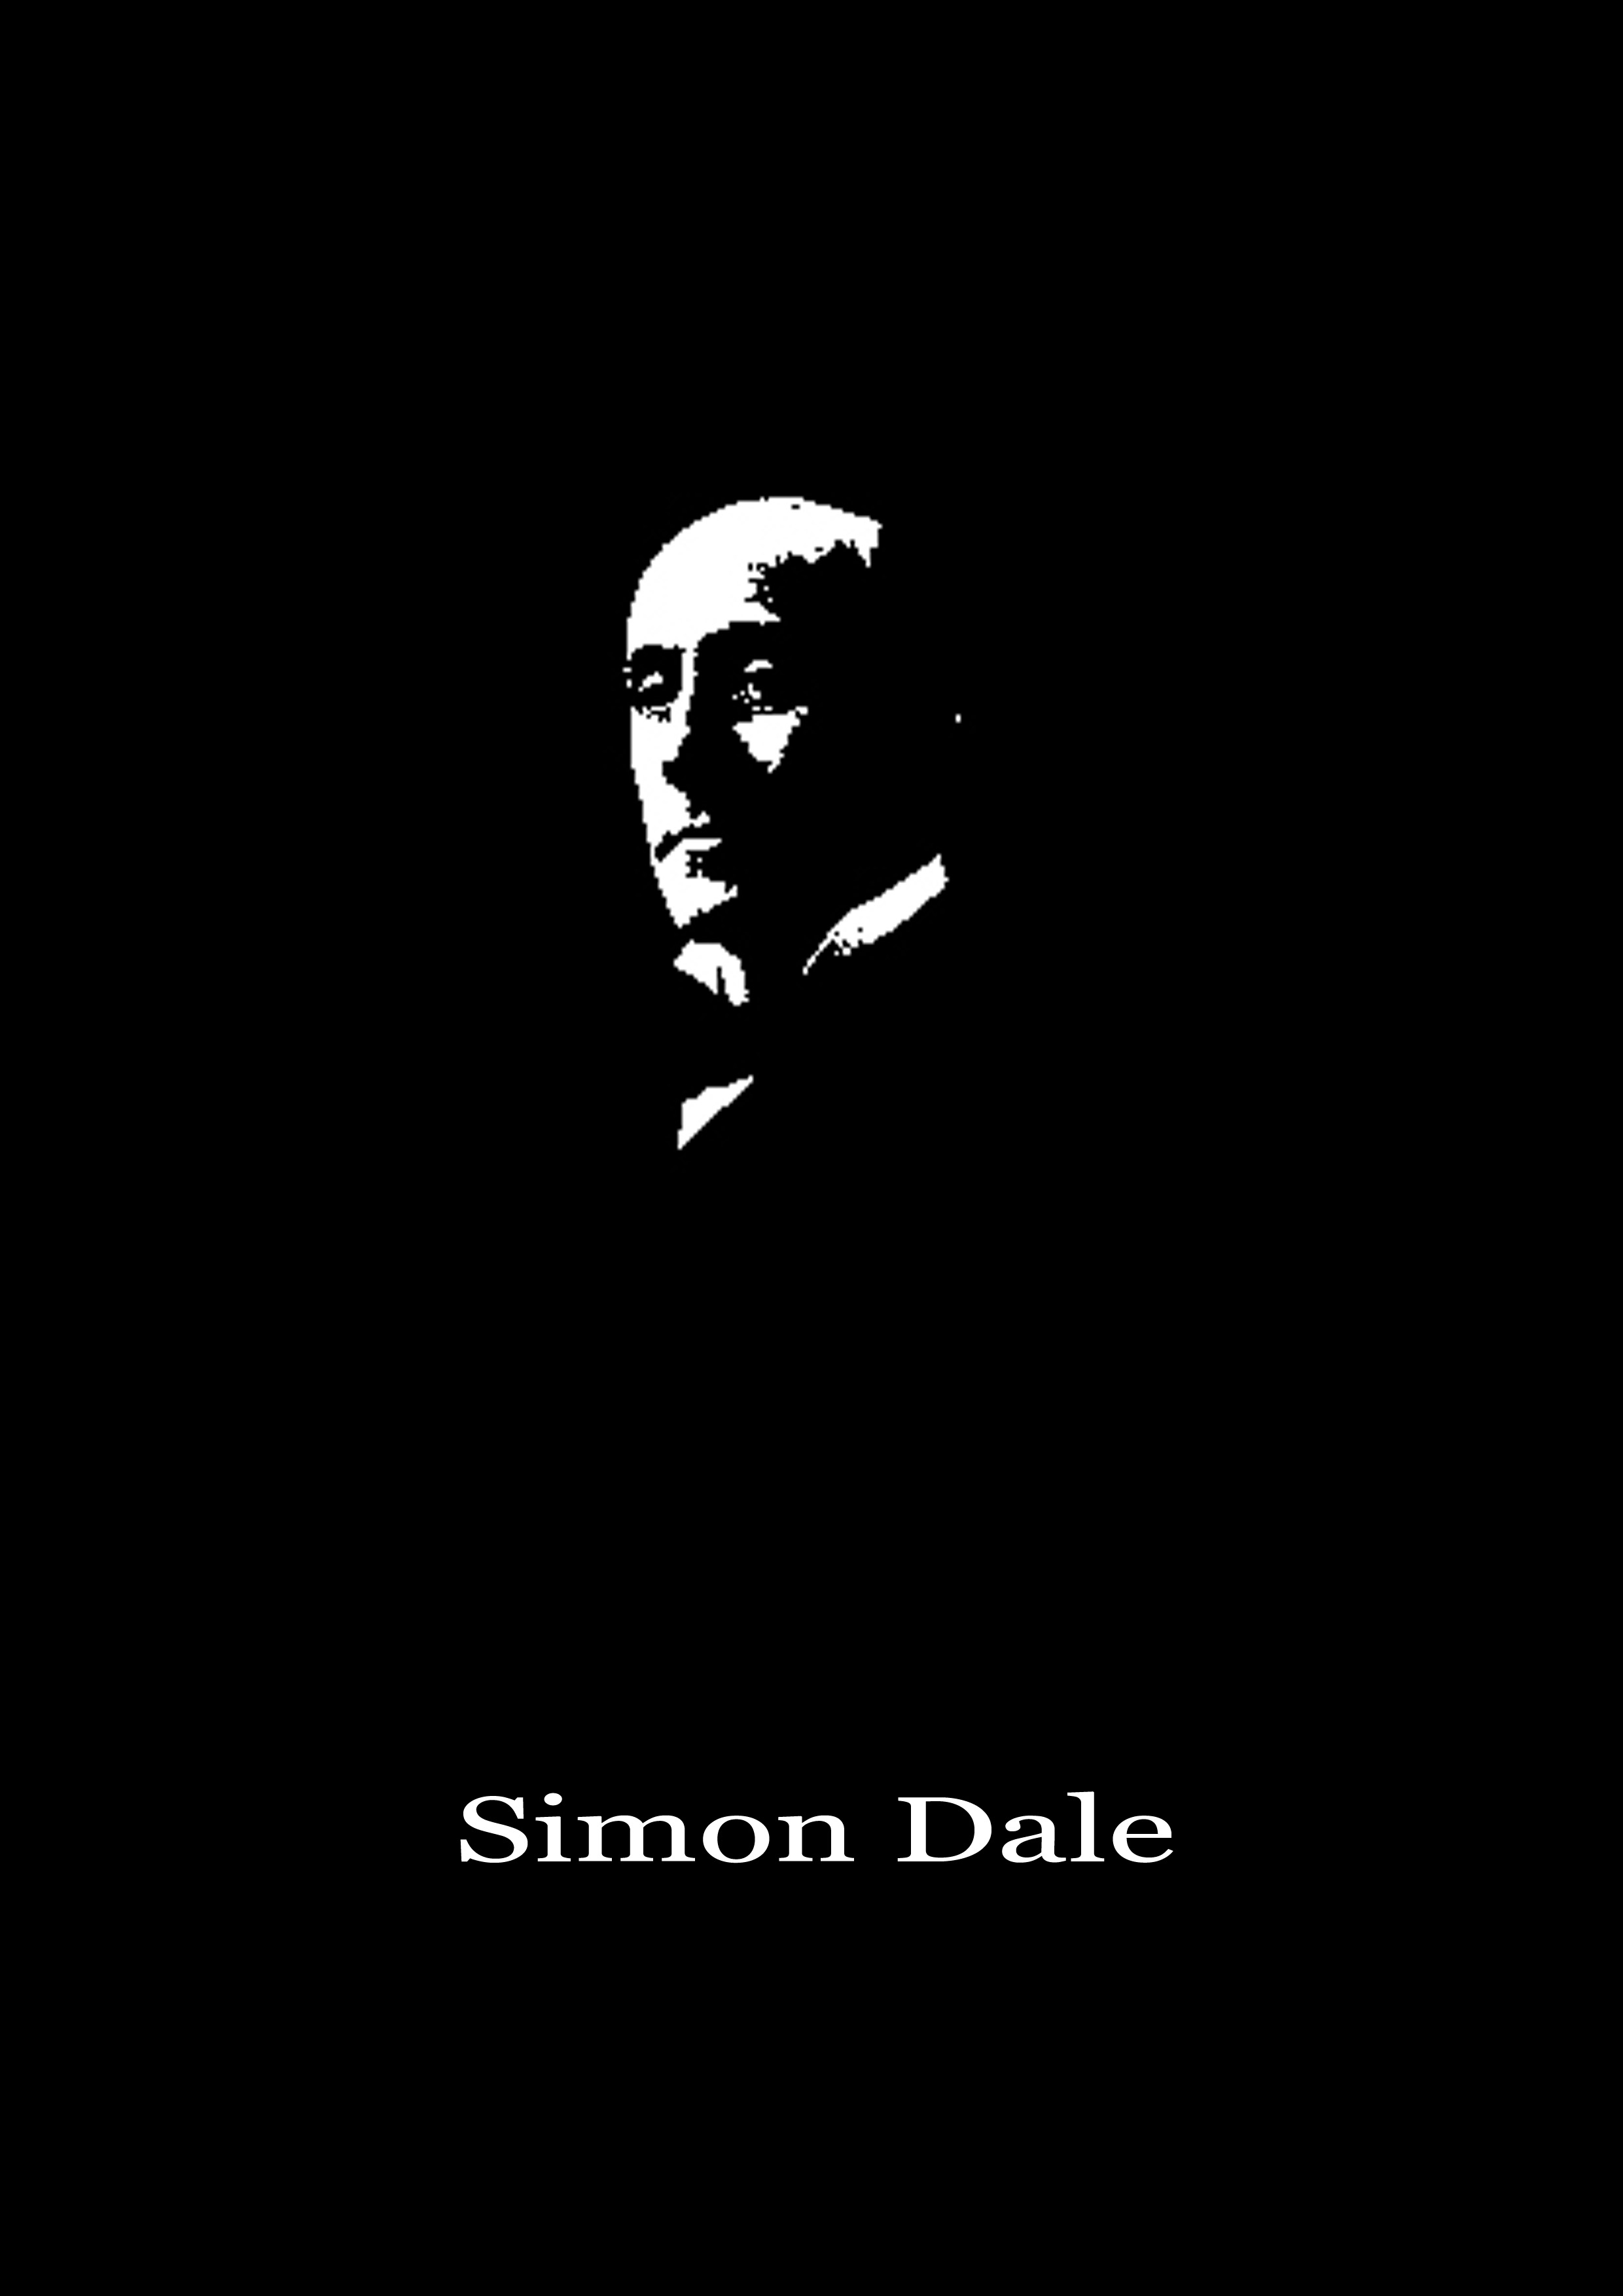 Simon Dale By: Anthony Hope